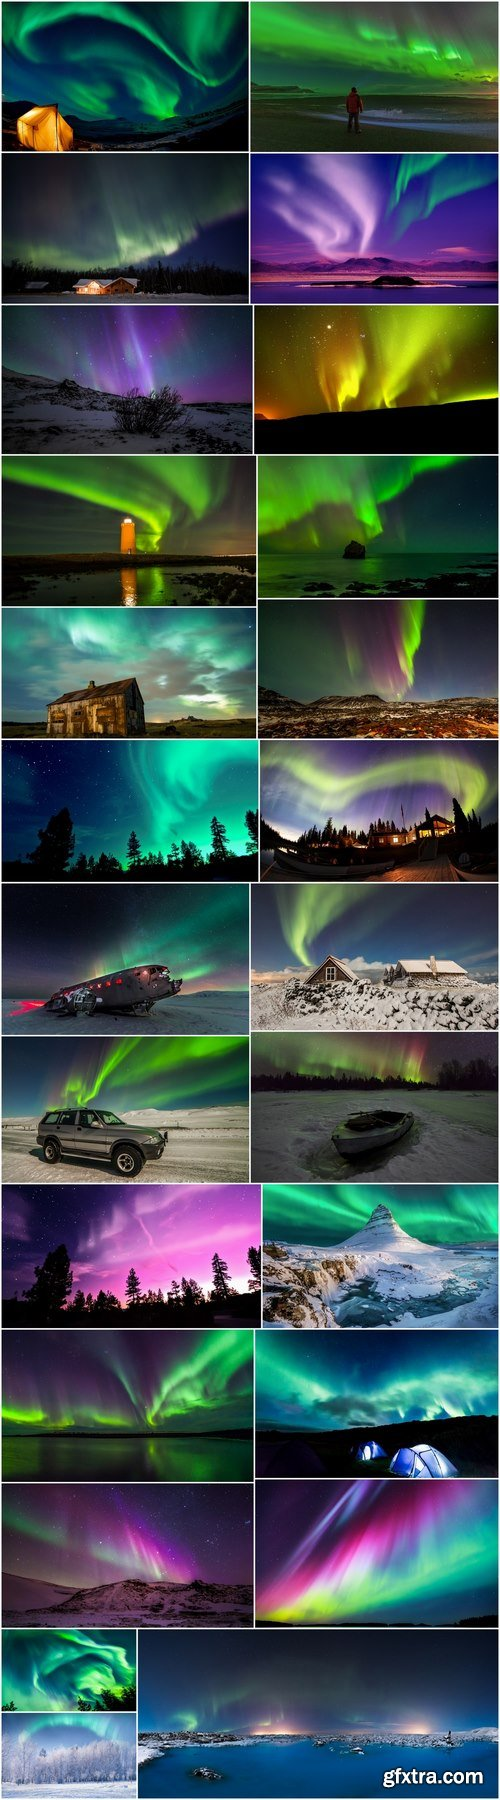 Northern lights starry sky landscape light effect travel 25 HQ Jpeg